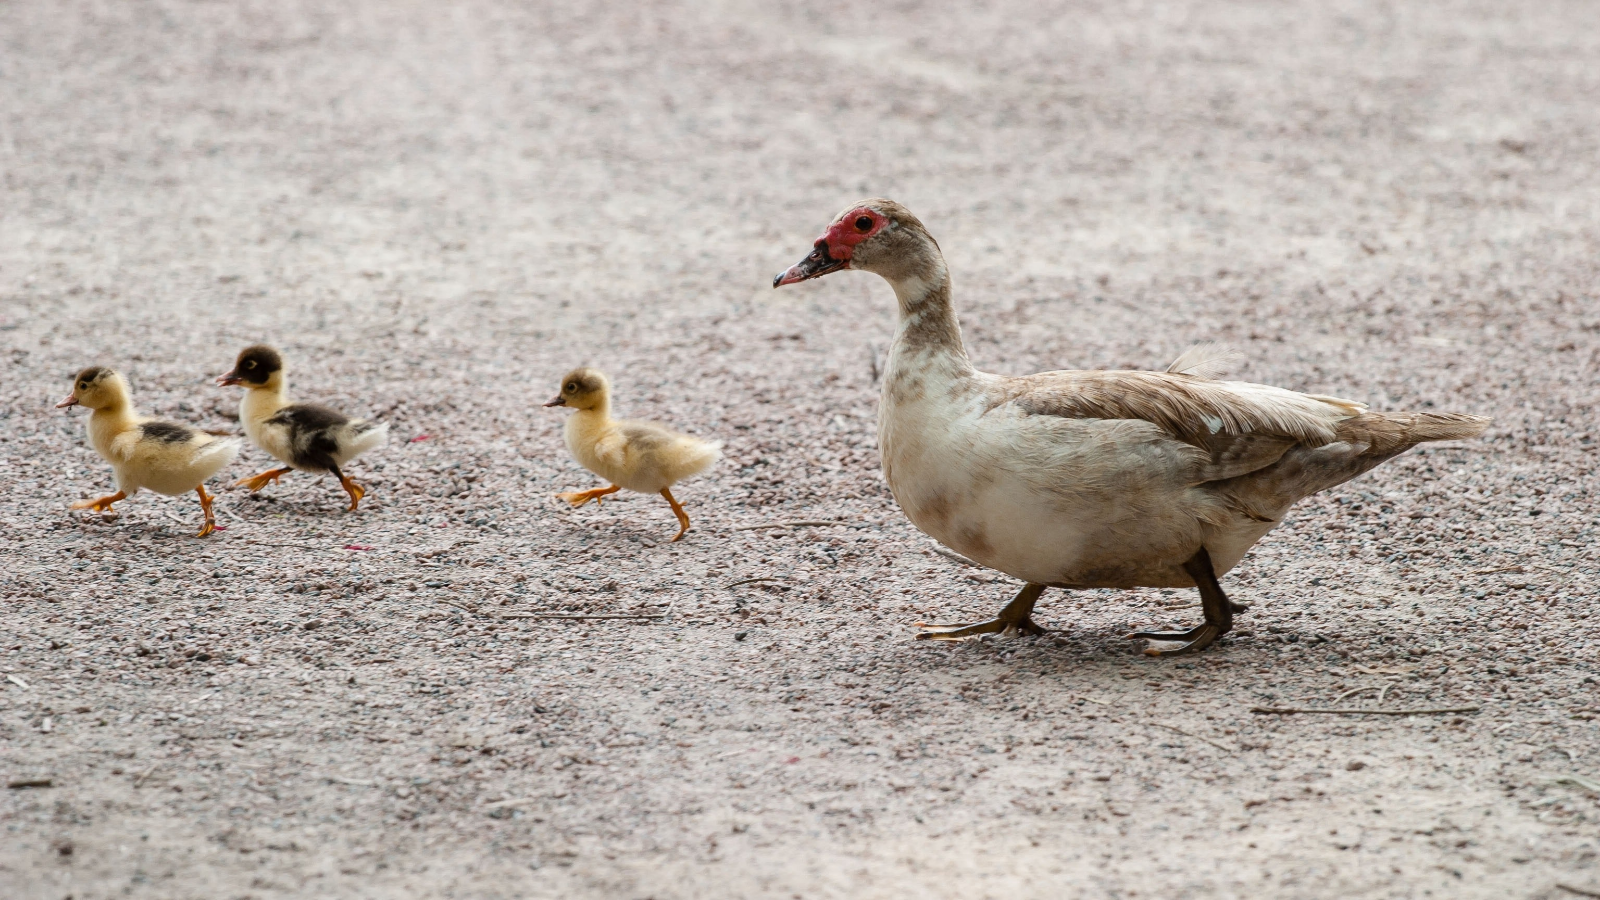 Mother duck follows her three baby ducks